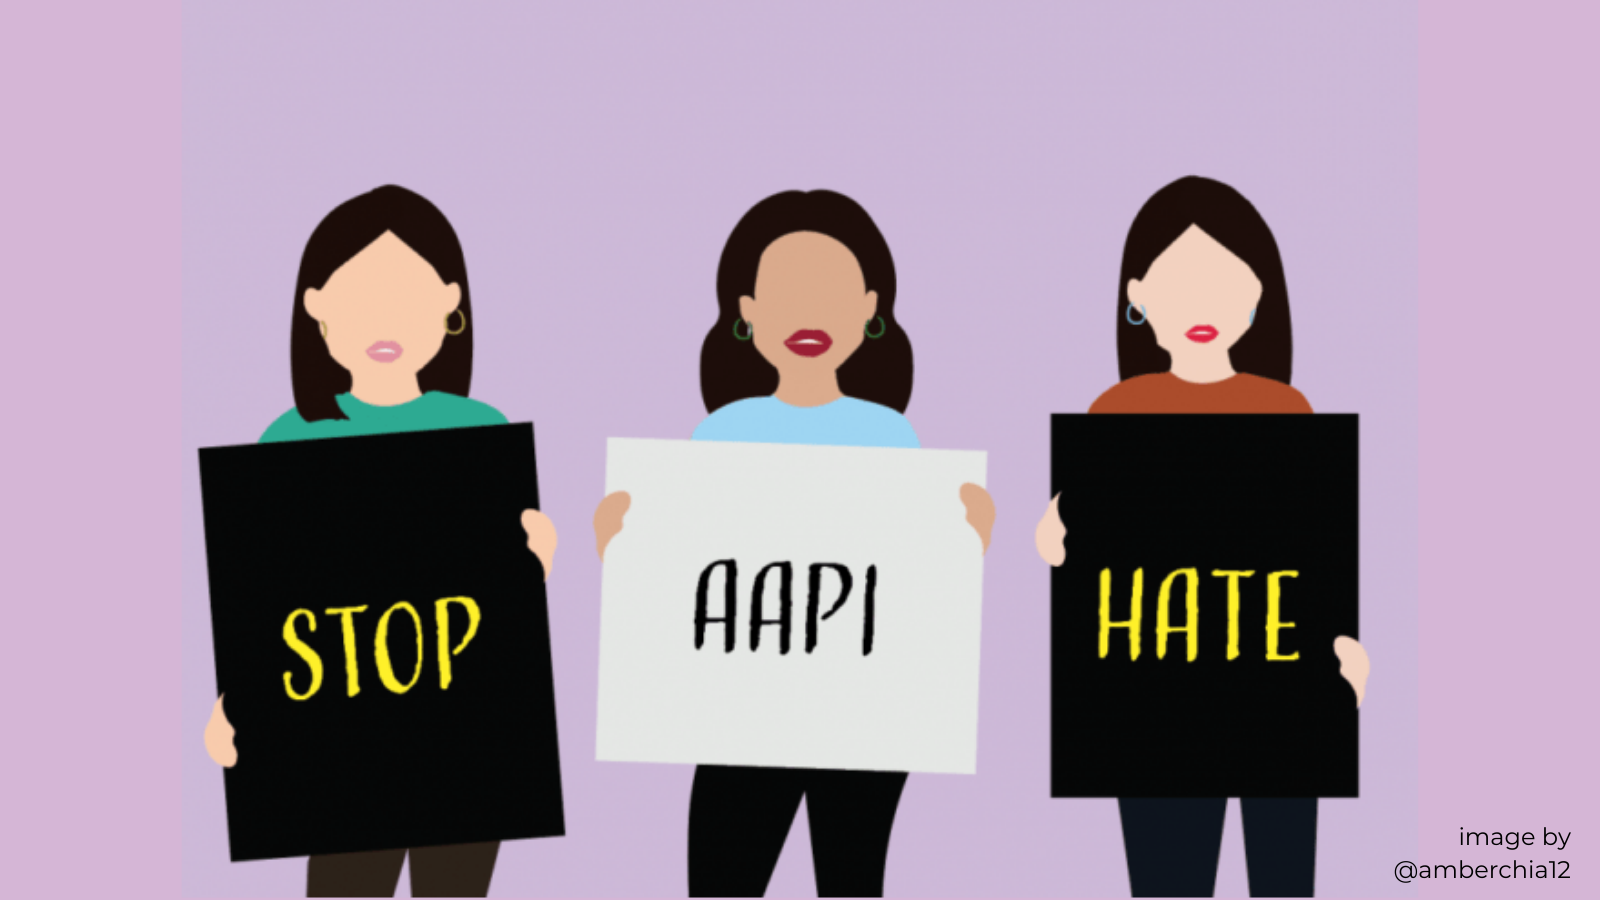 Digital sketch by Amber Chia of 3 Asian women holding signs that say